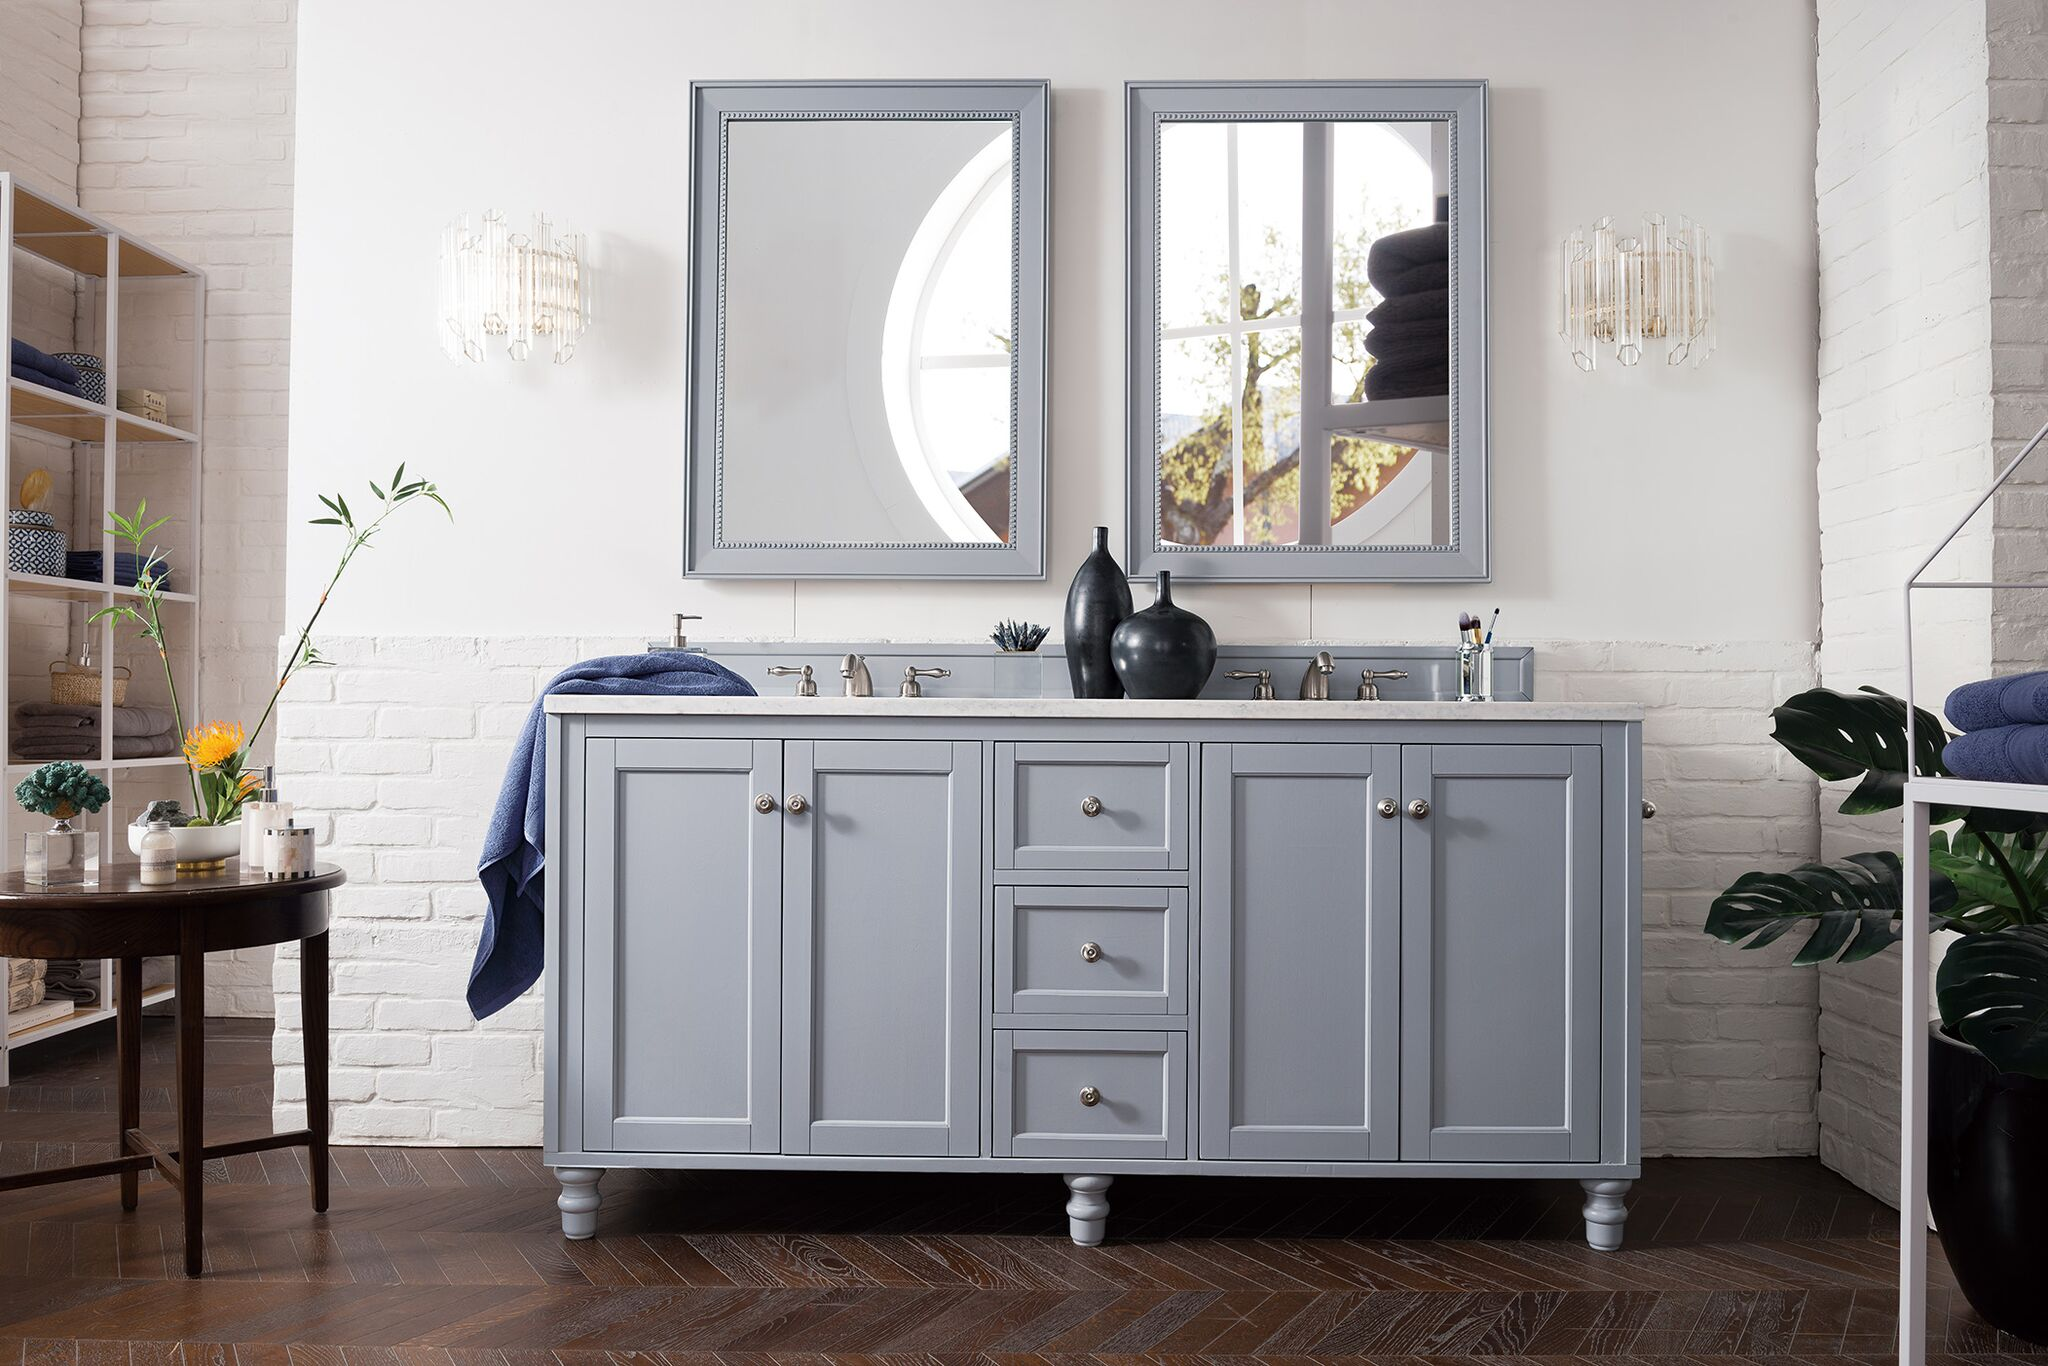 Vanity Sink Cabinets in Indianapolis at discount prices